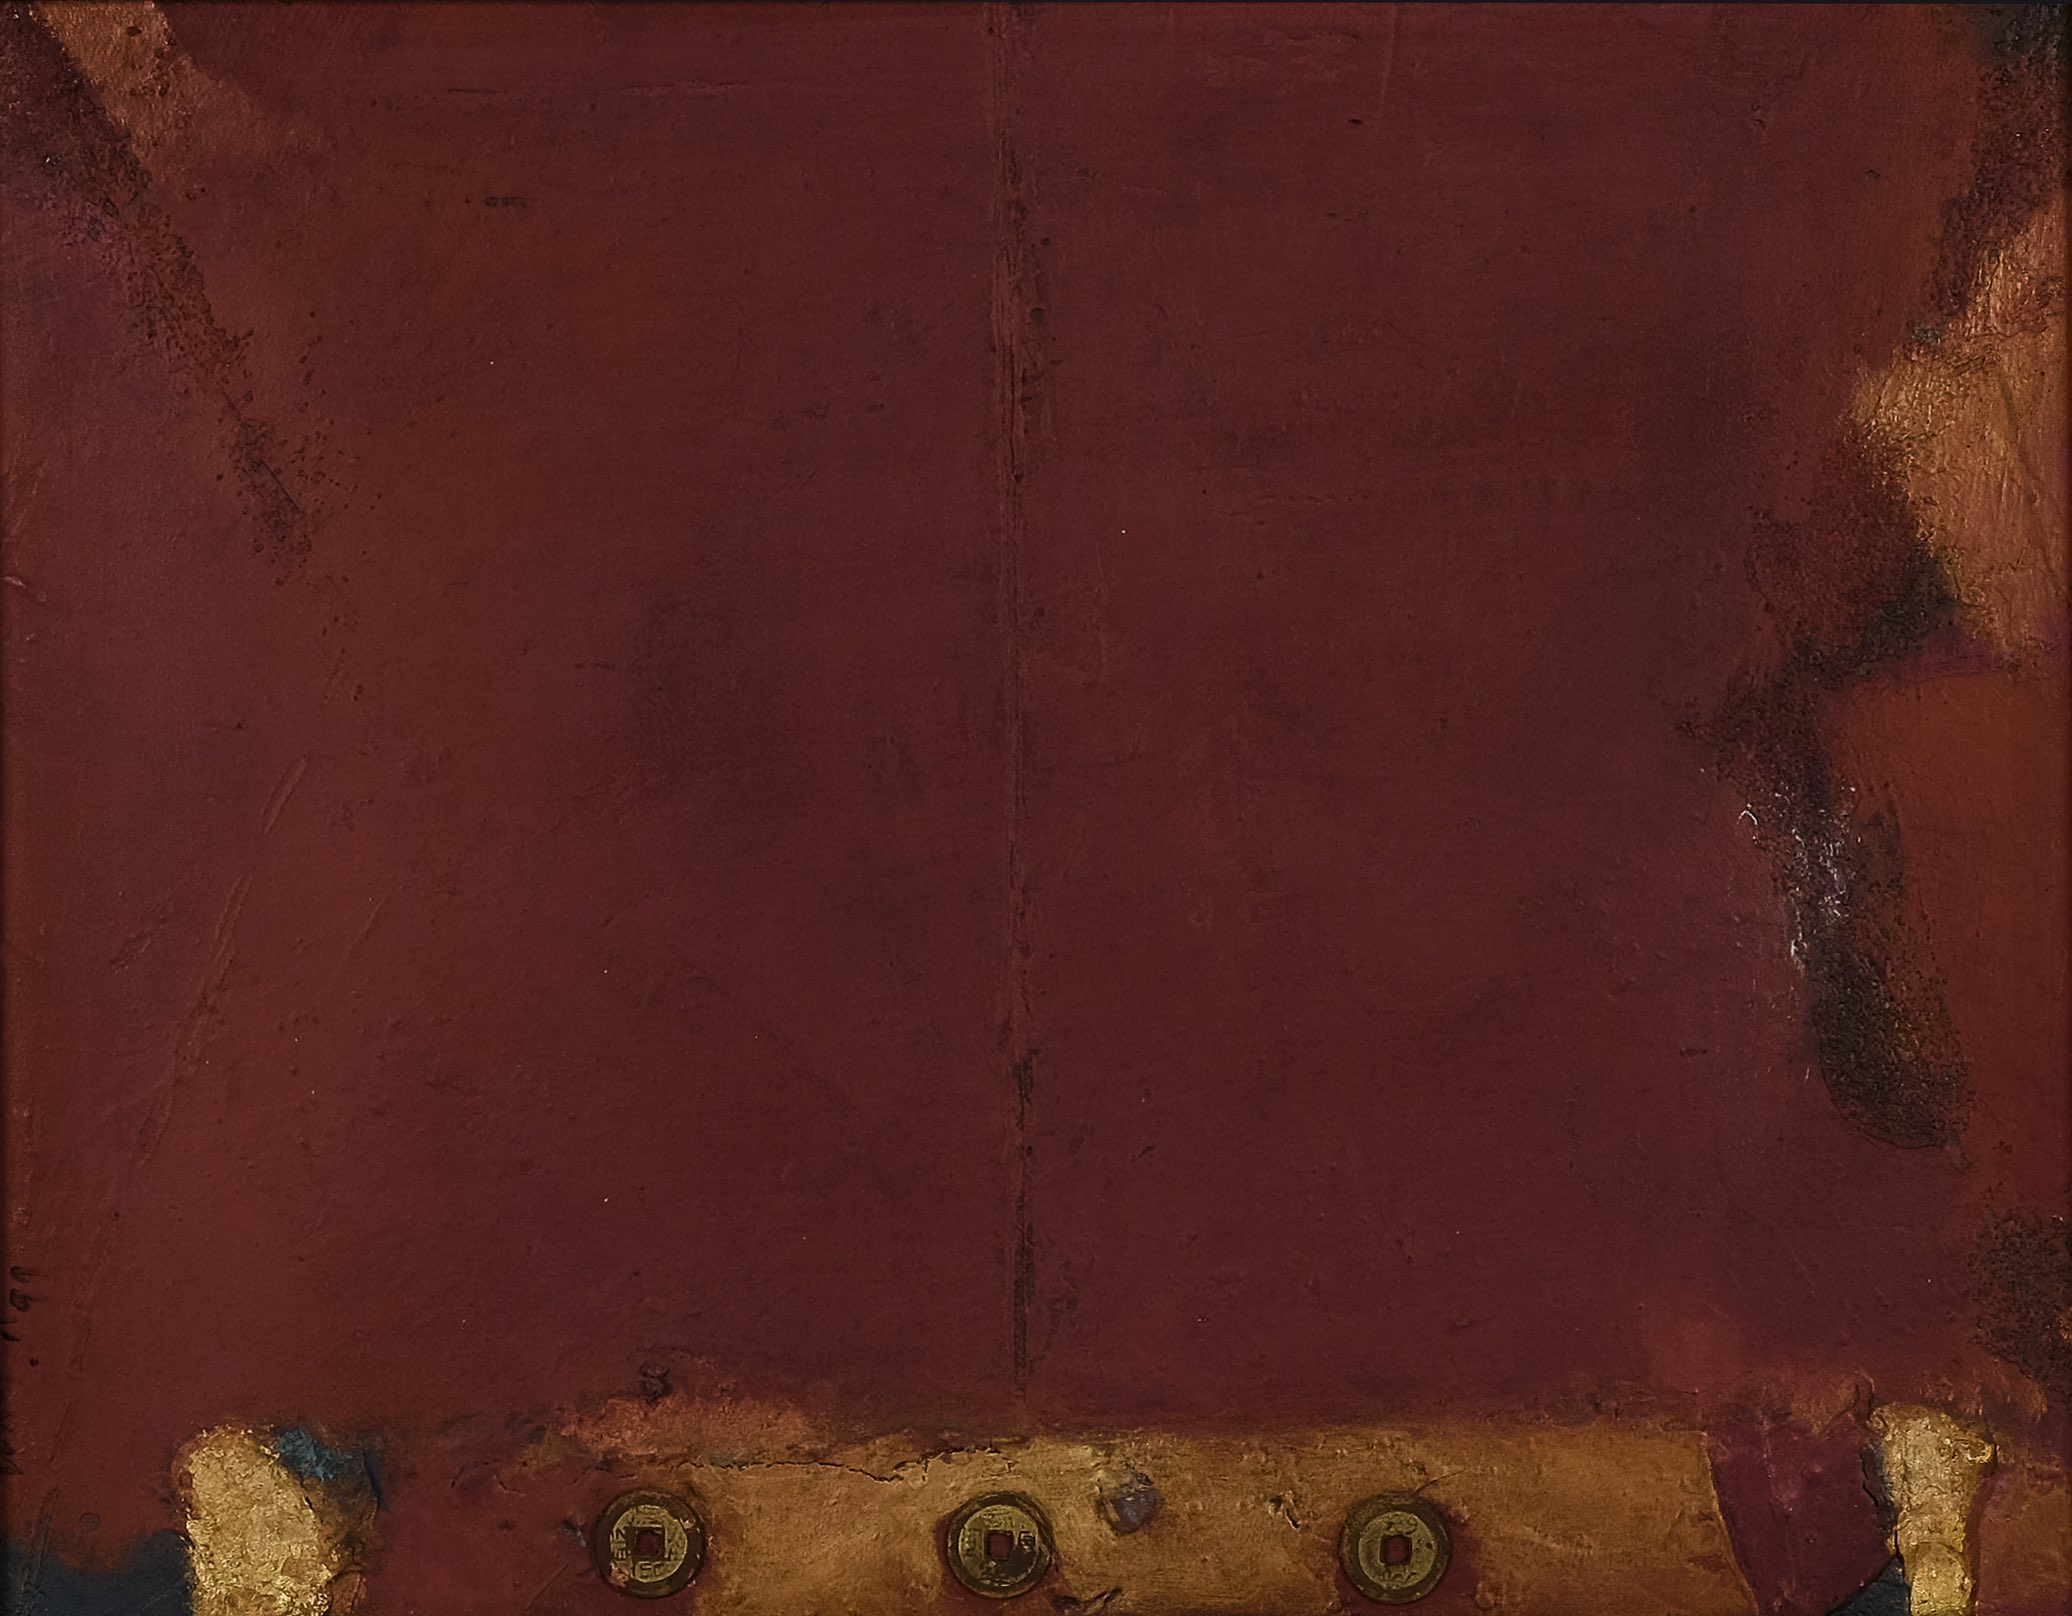 Umi Dachlan, 'Terracotta and Three Coins', mixed media on canvas, 35 x 45cm, 1999. Image courtesy of Art Agenda, S.E.A.